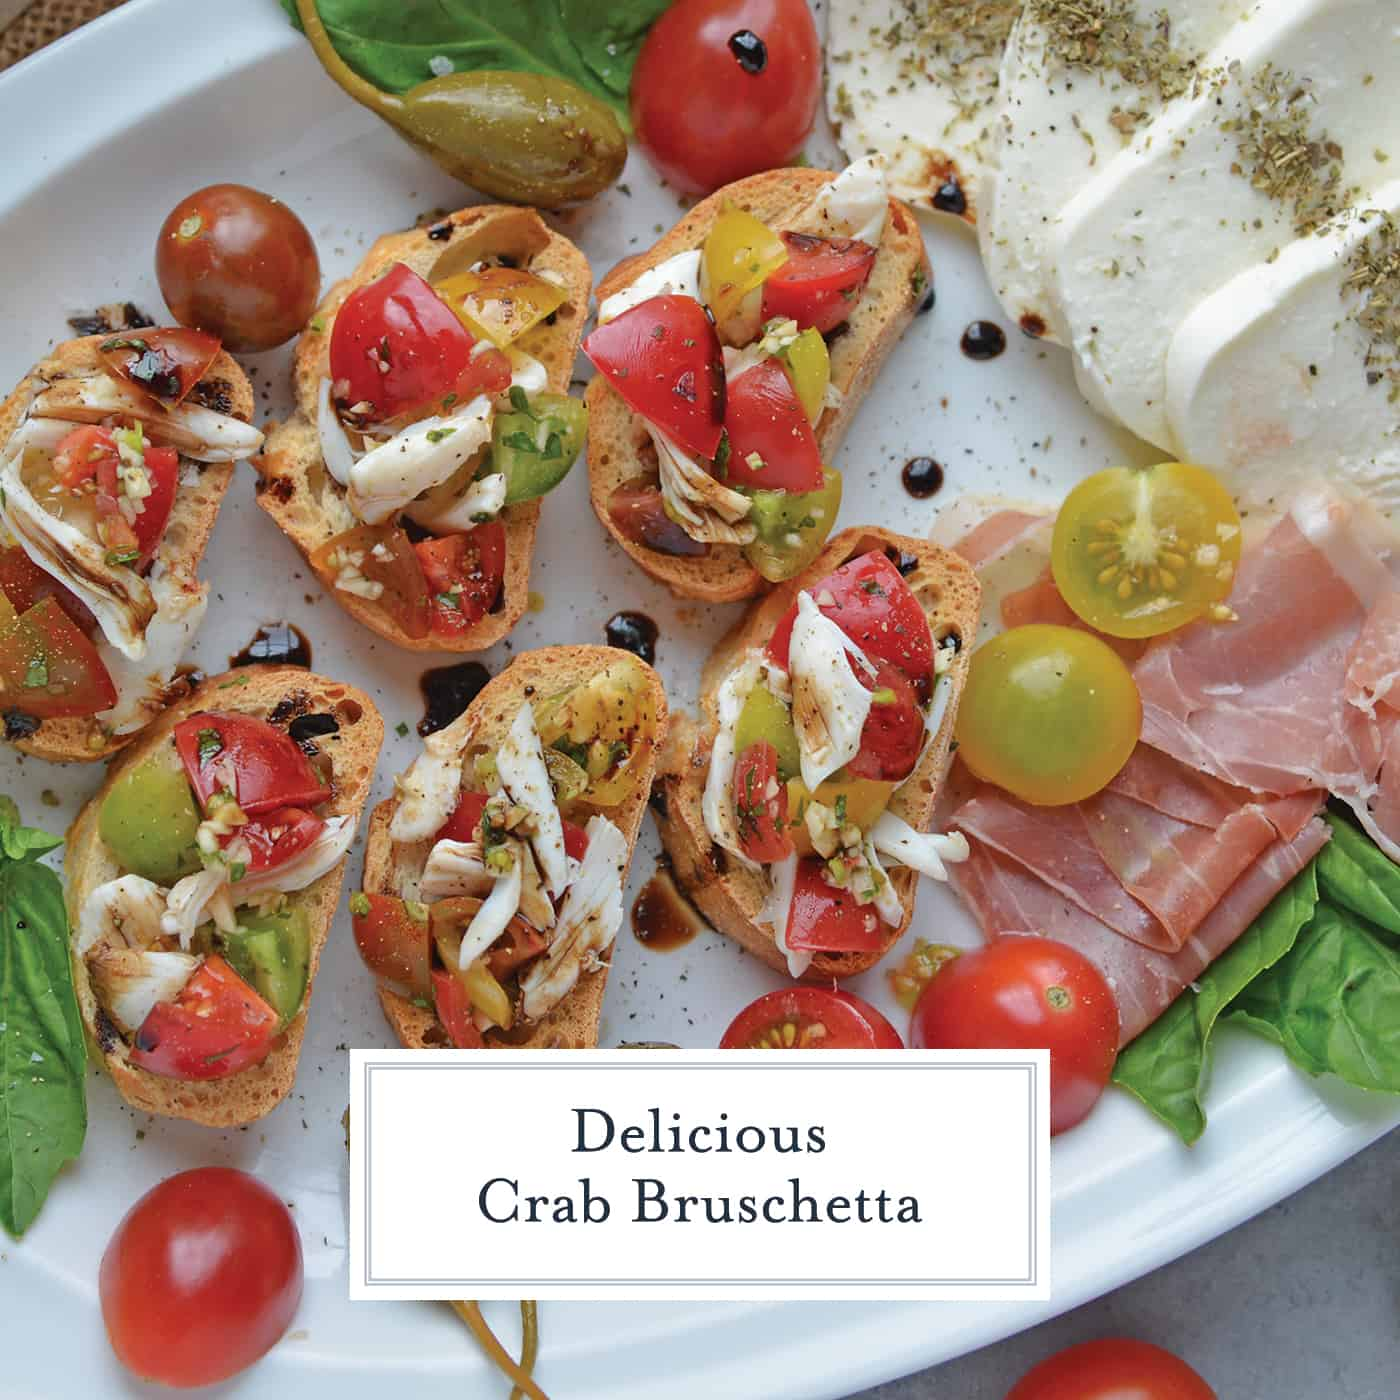 Crab Bruschetta is a mound of fresh tomatoes, garlic basil and buttery crab meat piled high on crispy toast. This is one of the best appetizers out there! #crabbruschetta #easybruschetta www.savoryexperiments.com